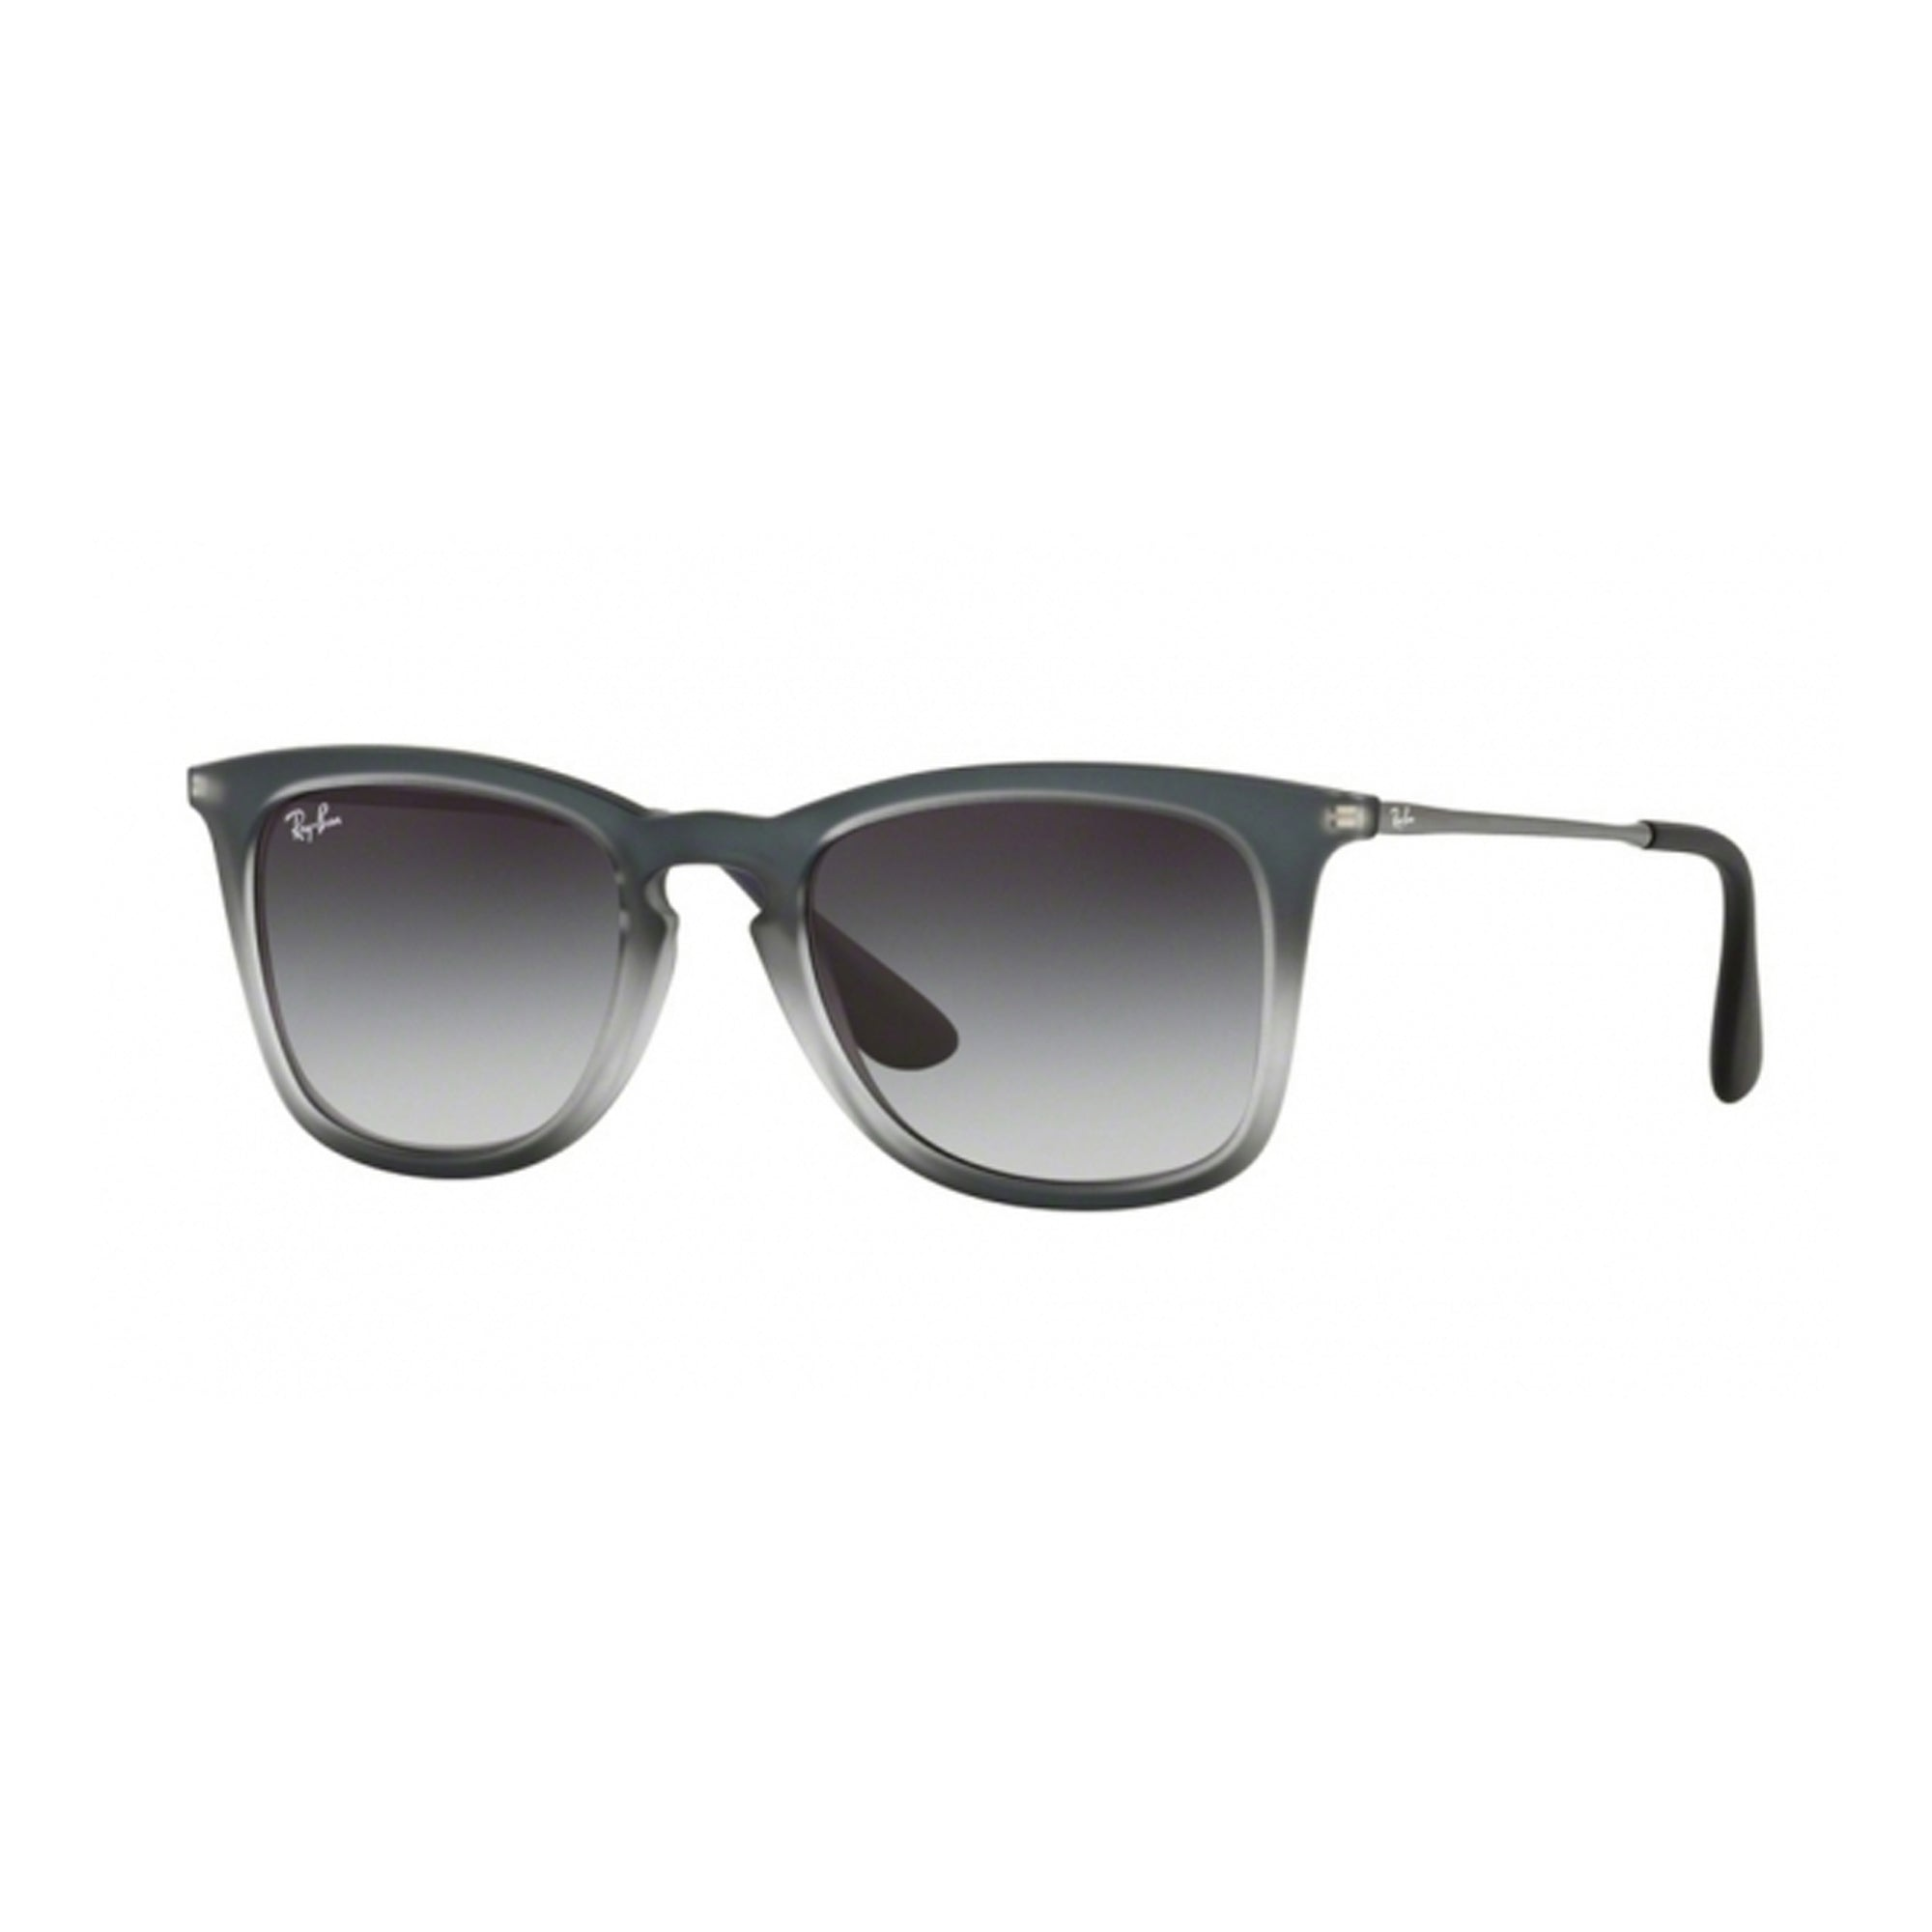 Ray-Ban RB4221 Men's Sunglasses - Grey-Gunmetal/Grey Gradient